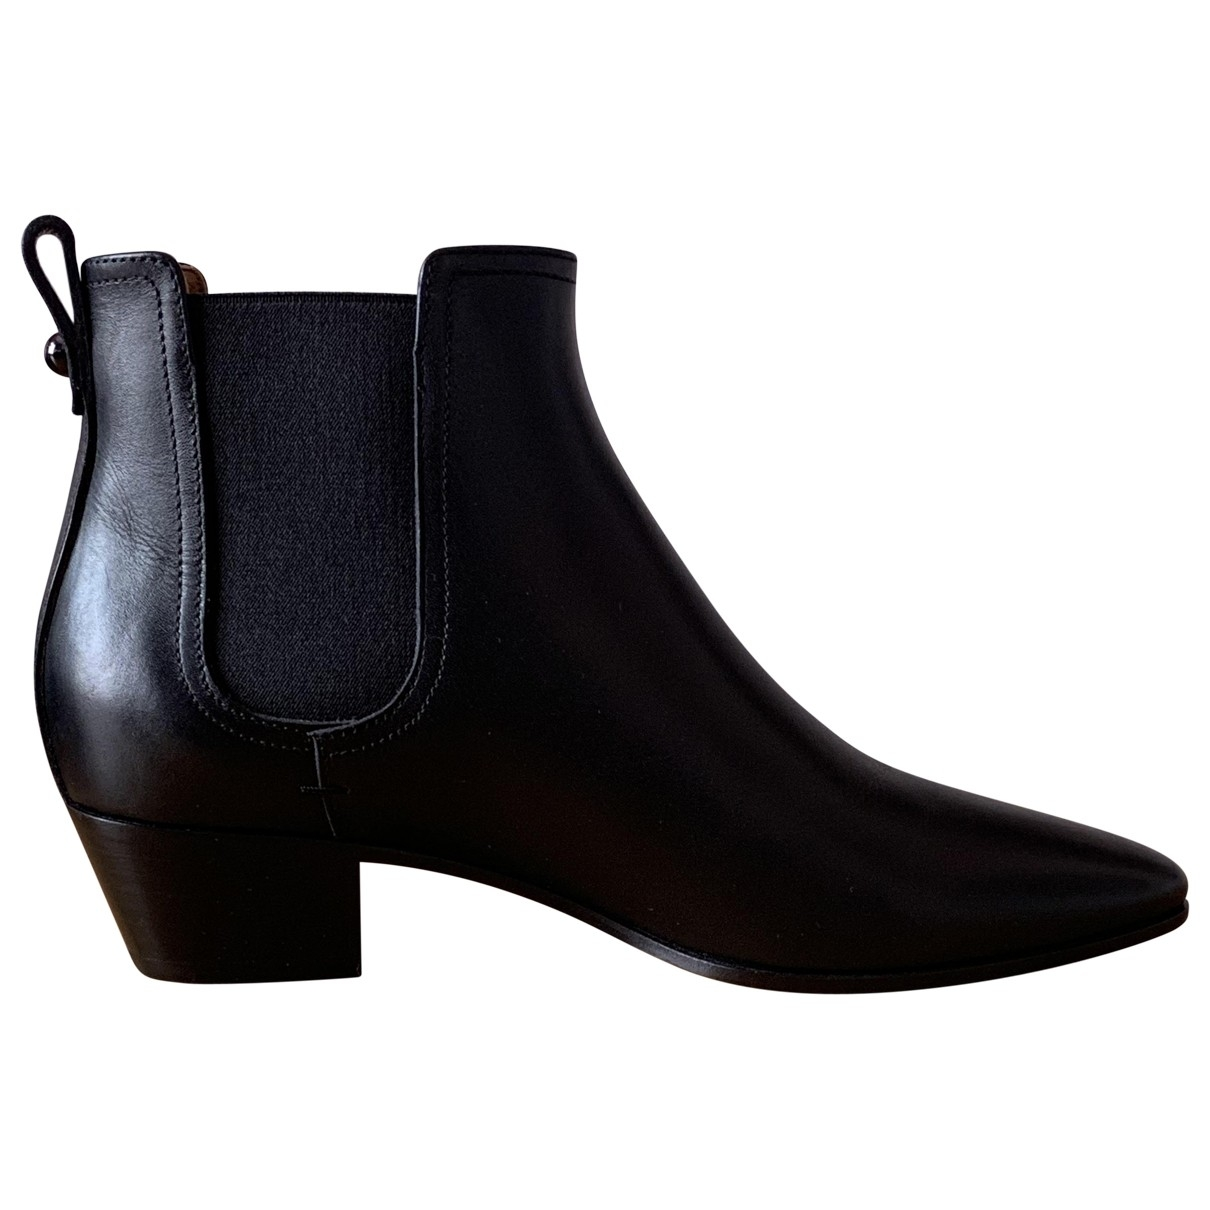 Bally \N Black Leather Ankle boots for Women 37 EU